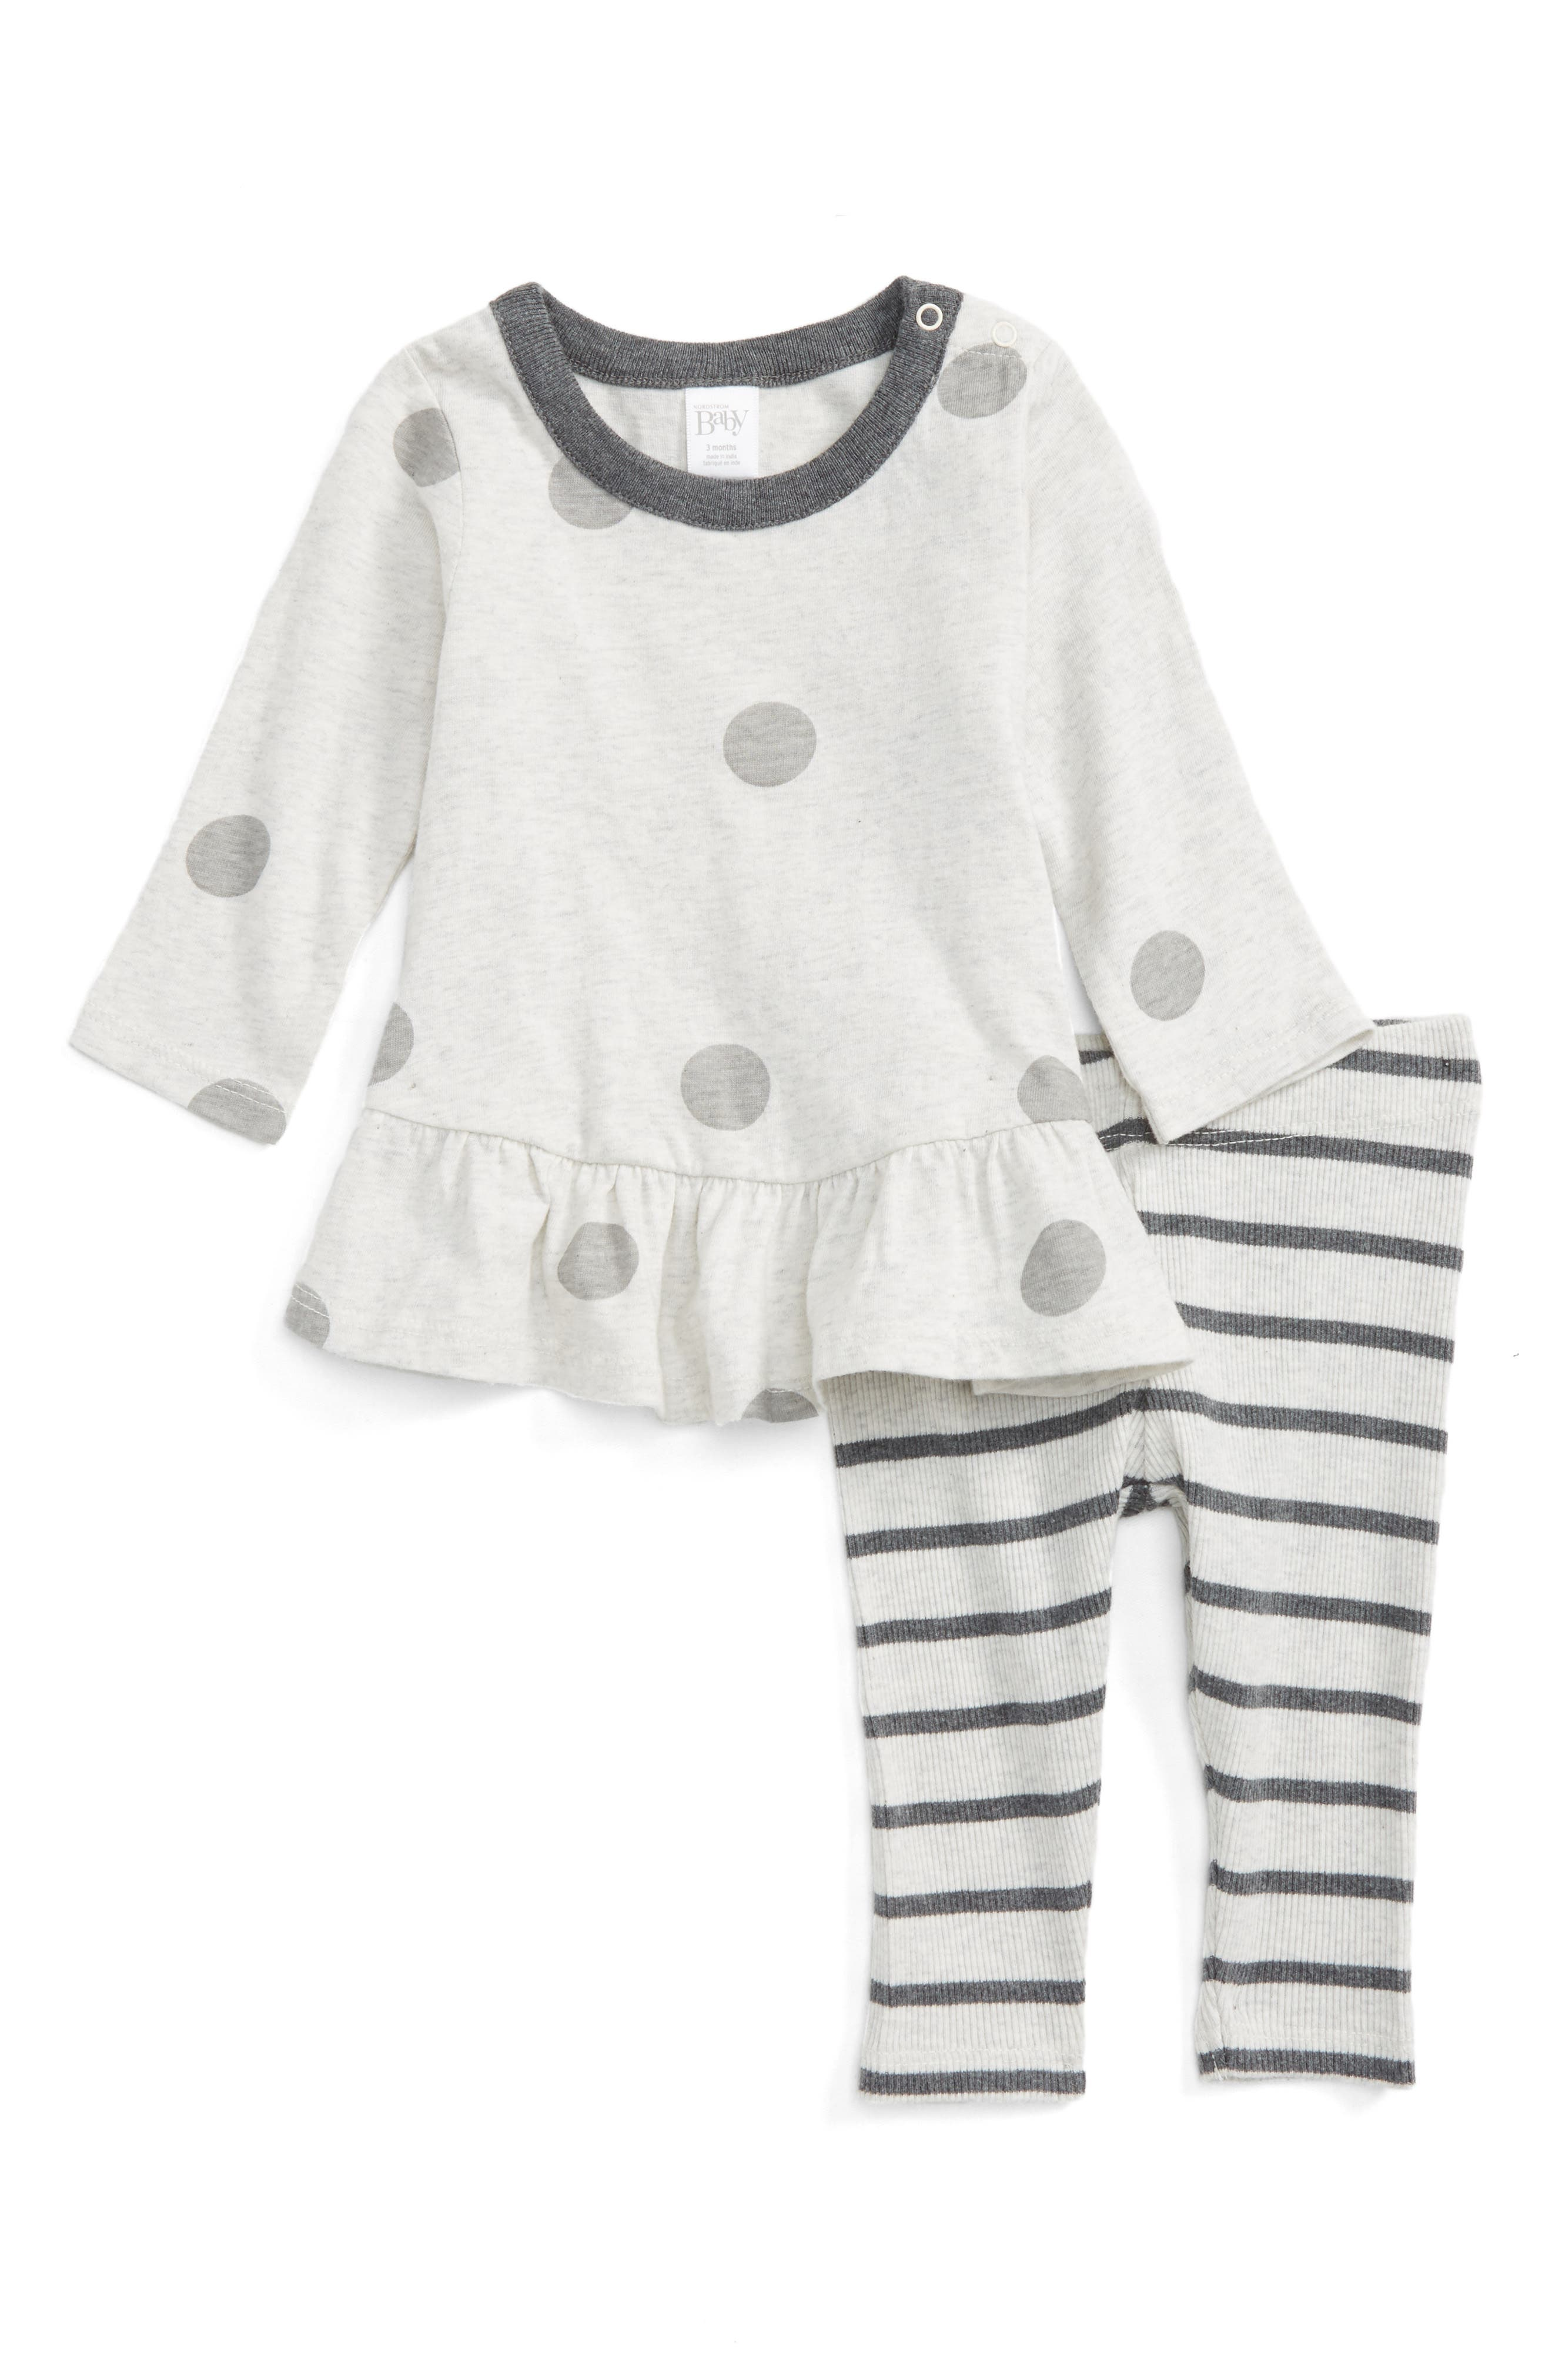 Nordstrom Baby Polka Dot Peplum Tunic & Stripe Leggings Set (Baby Girls)